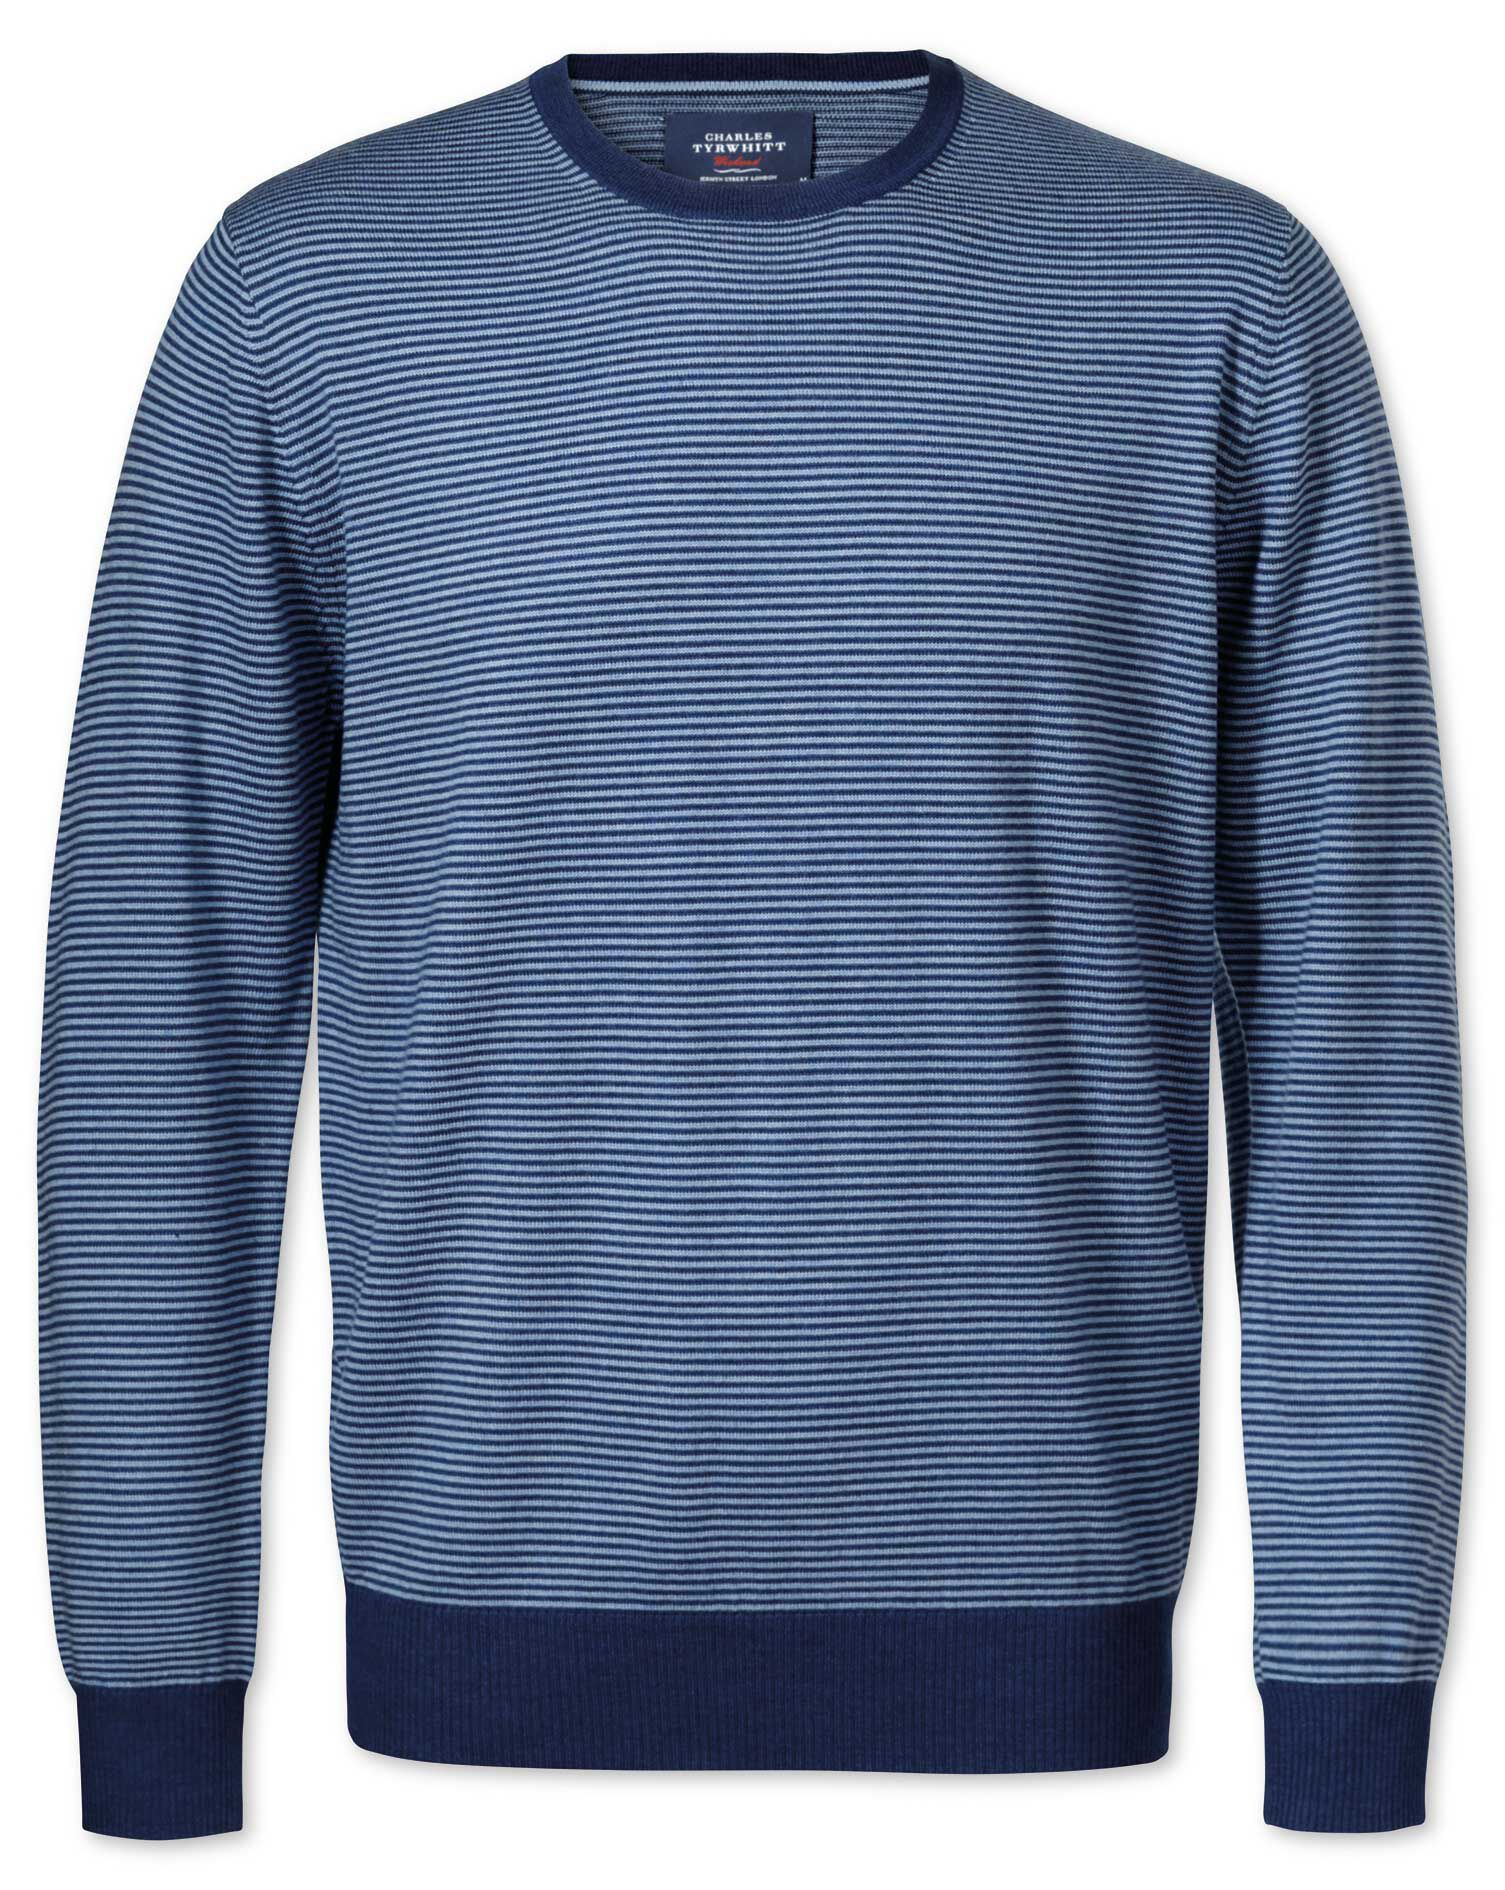 Mid Blue Merino Crew Neck Wool Jumper Size XS by Charles Tyrwhitt